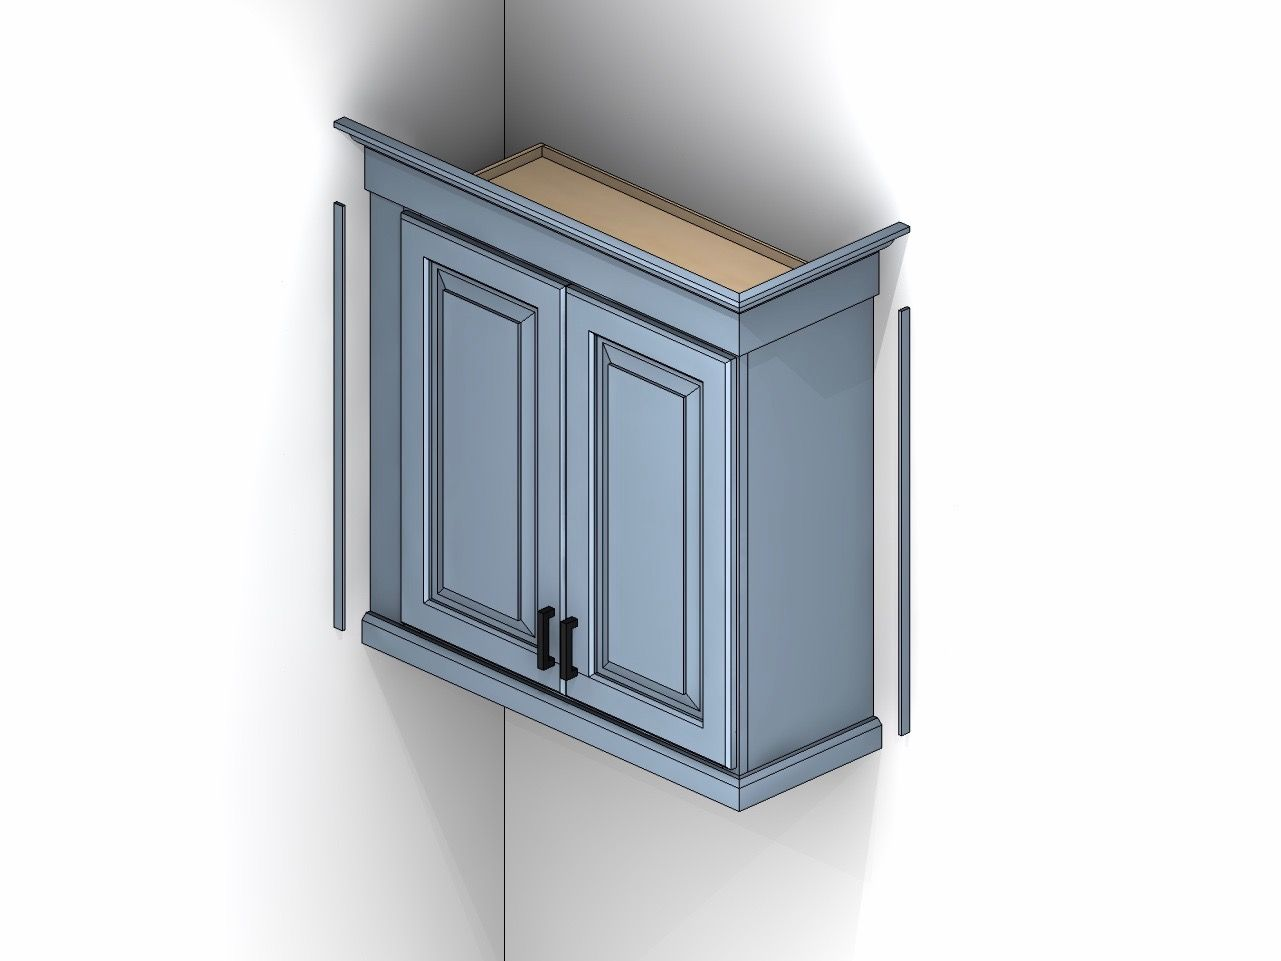 Cabinet Illustration Showing Scribe Molding Kitchen Cabinet Molding Diy Molding Cabinet Molding